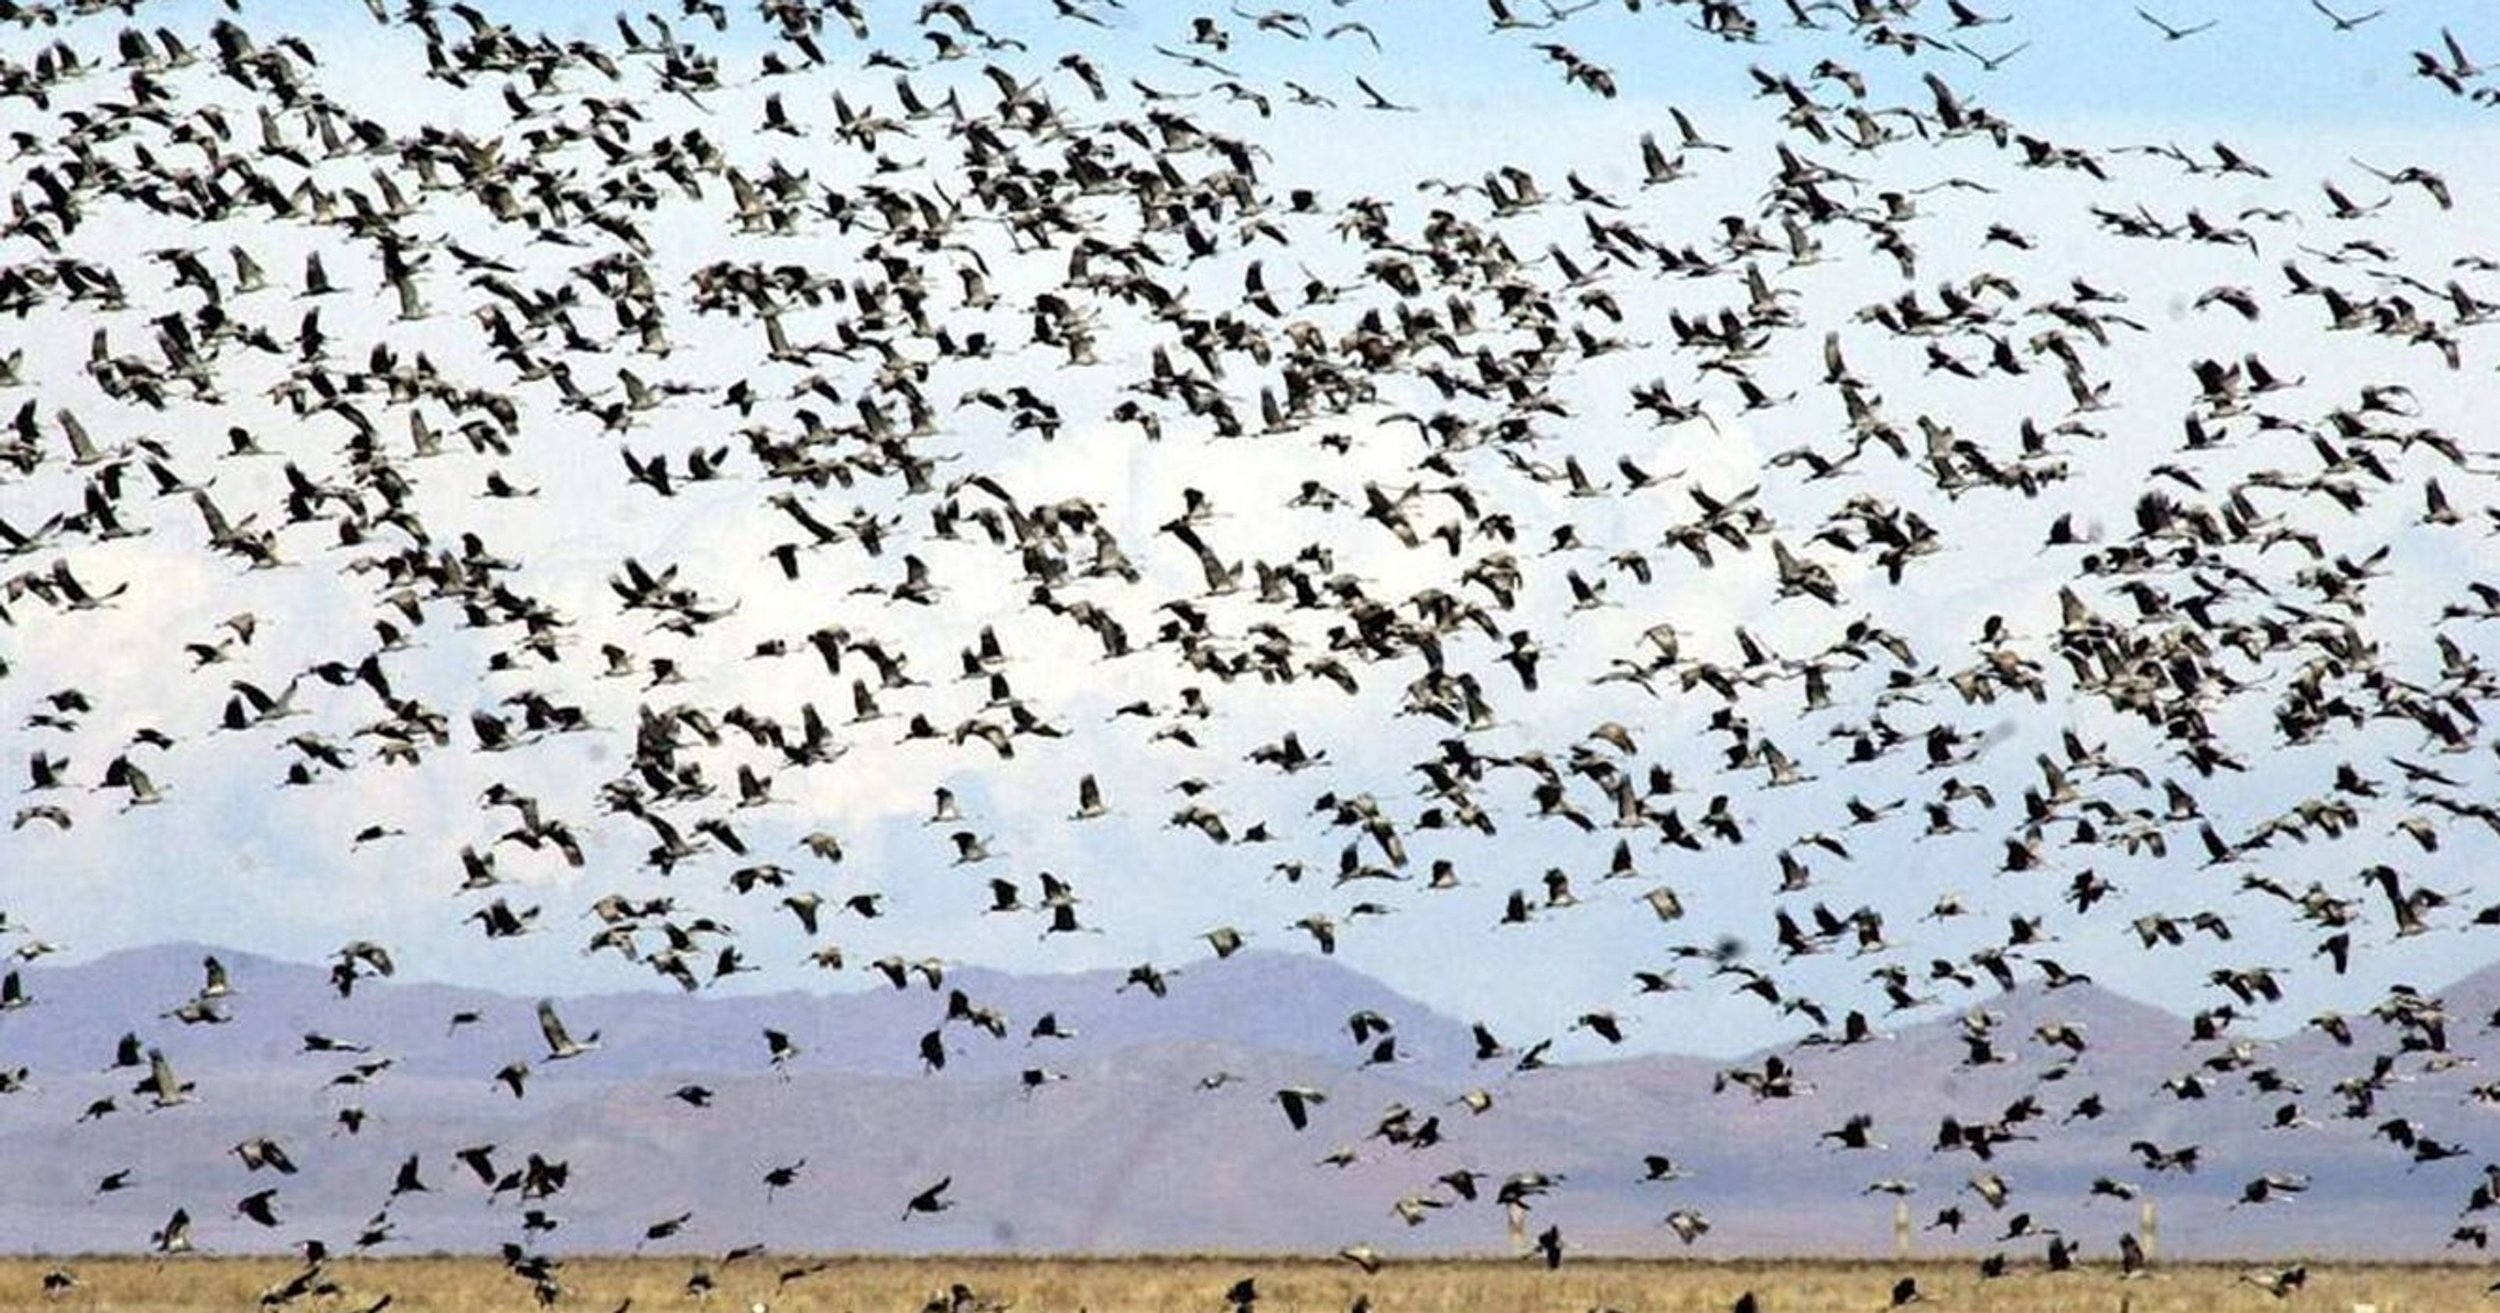 Wings Over Willcox Festival - The mission of the Wings Over Willcox festival is to foster awareness of birds, wildlife and their habitats; to promote conservation and habitat development of the birds and wildlife of Southeastern Arizona; and to develop viable, nature-based tourism in Willcox and the surrounding areas.